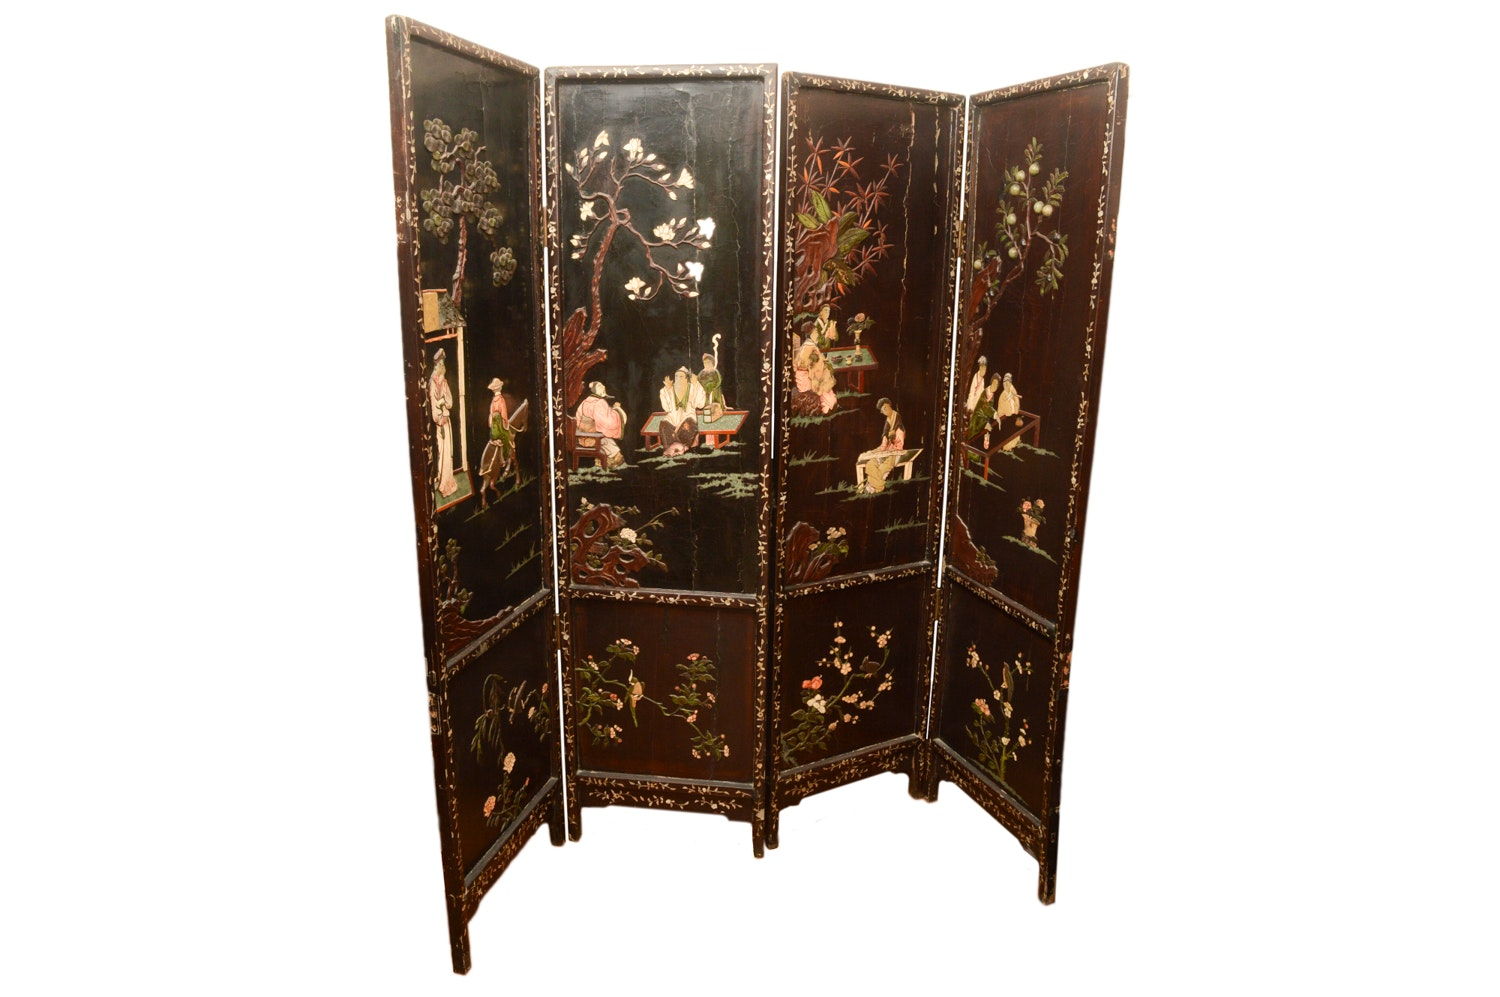 Vintage Chinese Four-Panel Folding Screen with Four Seasons Motif